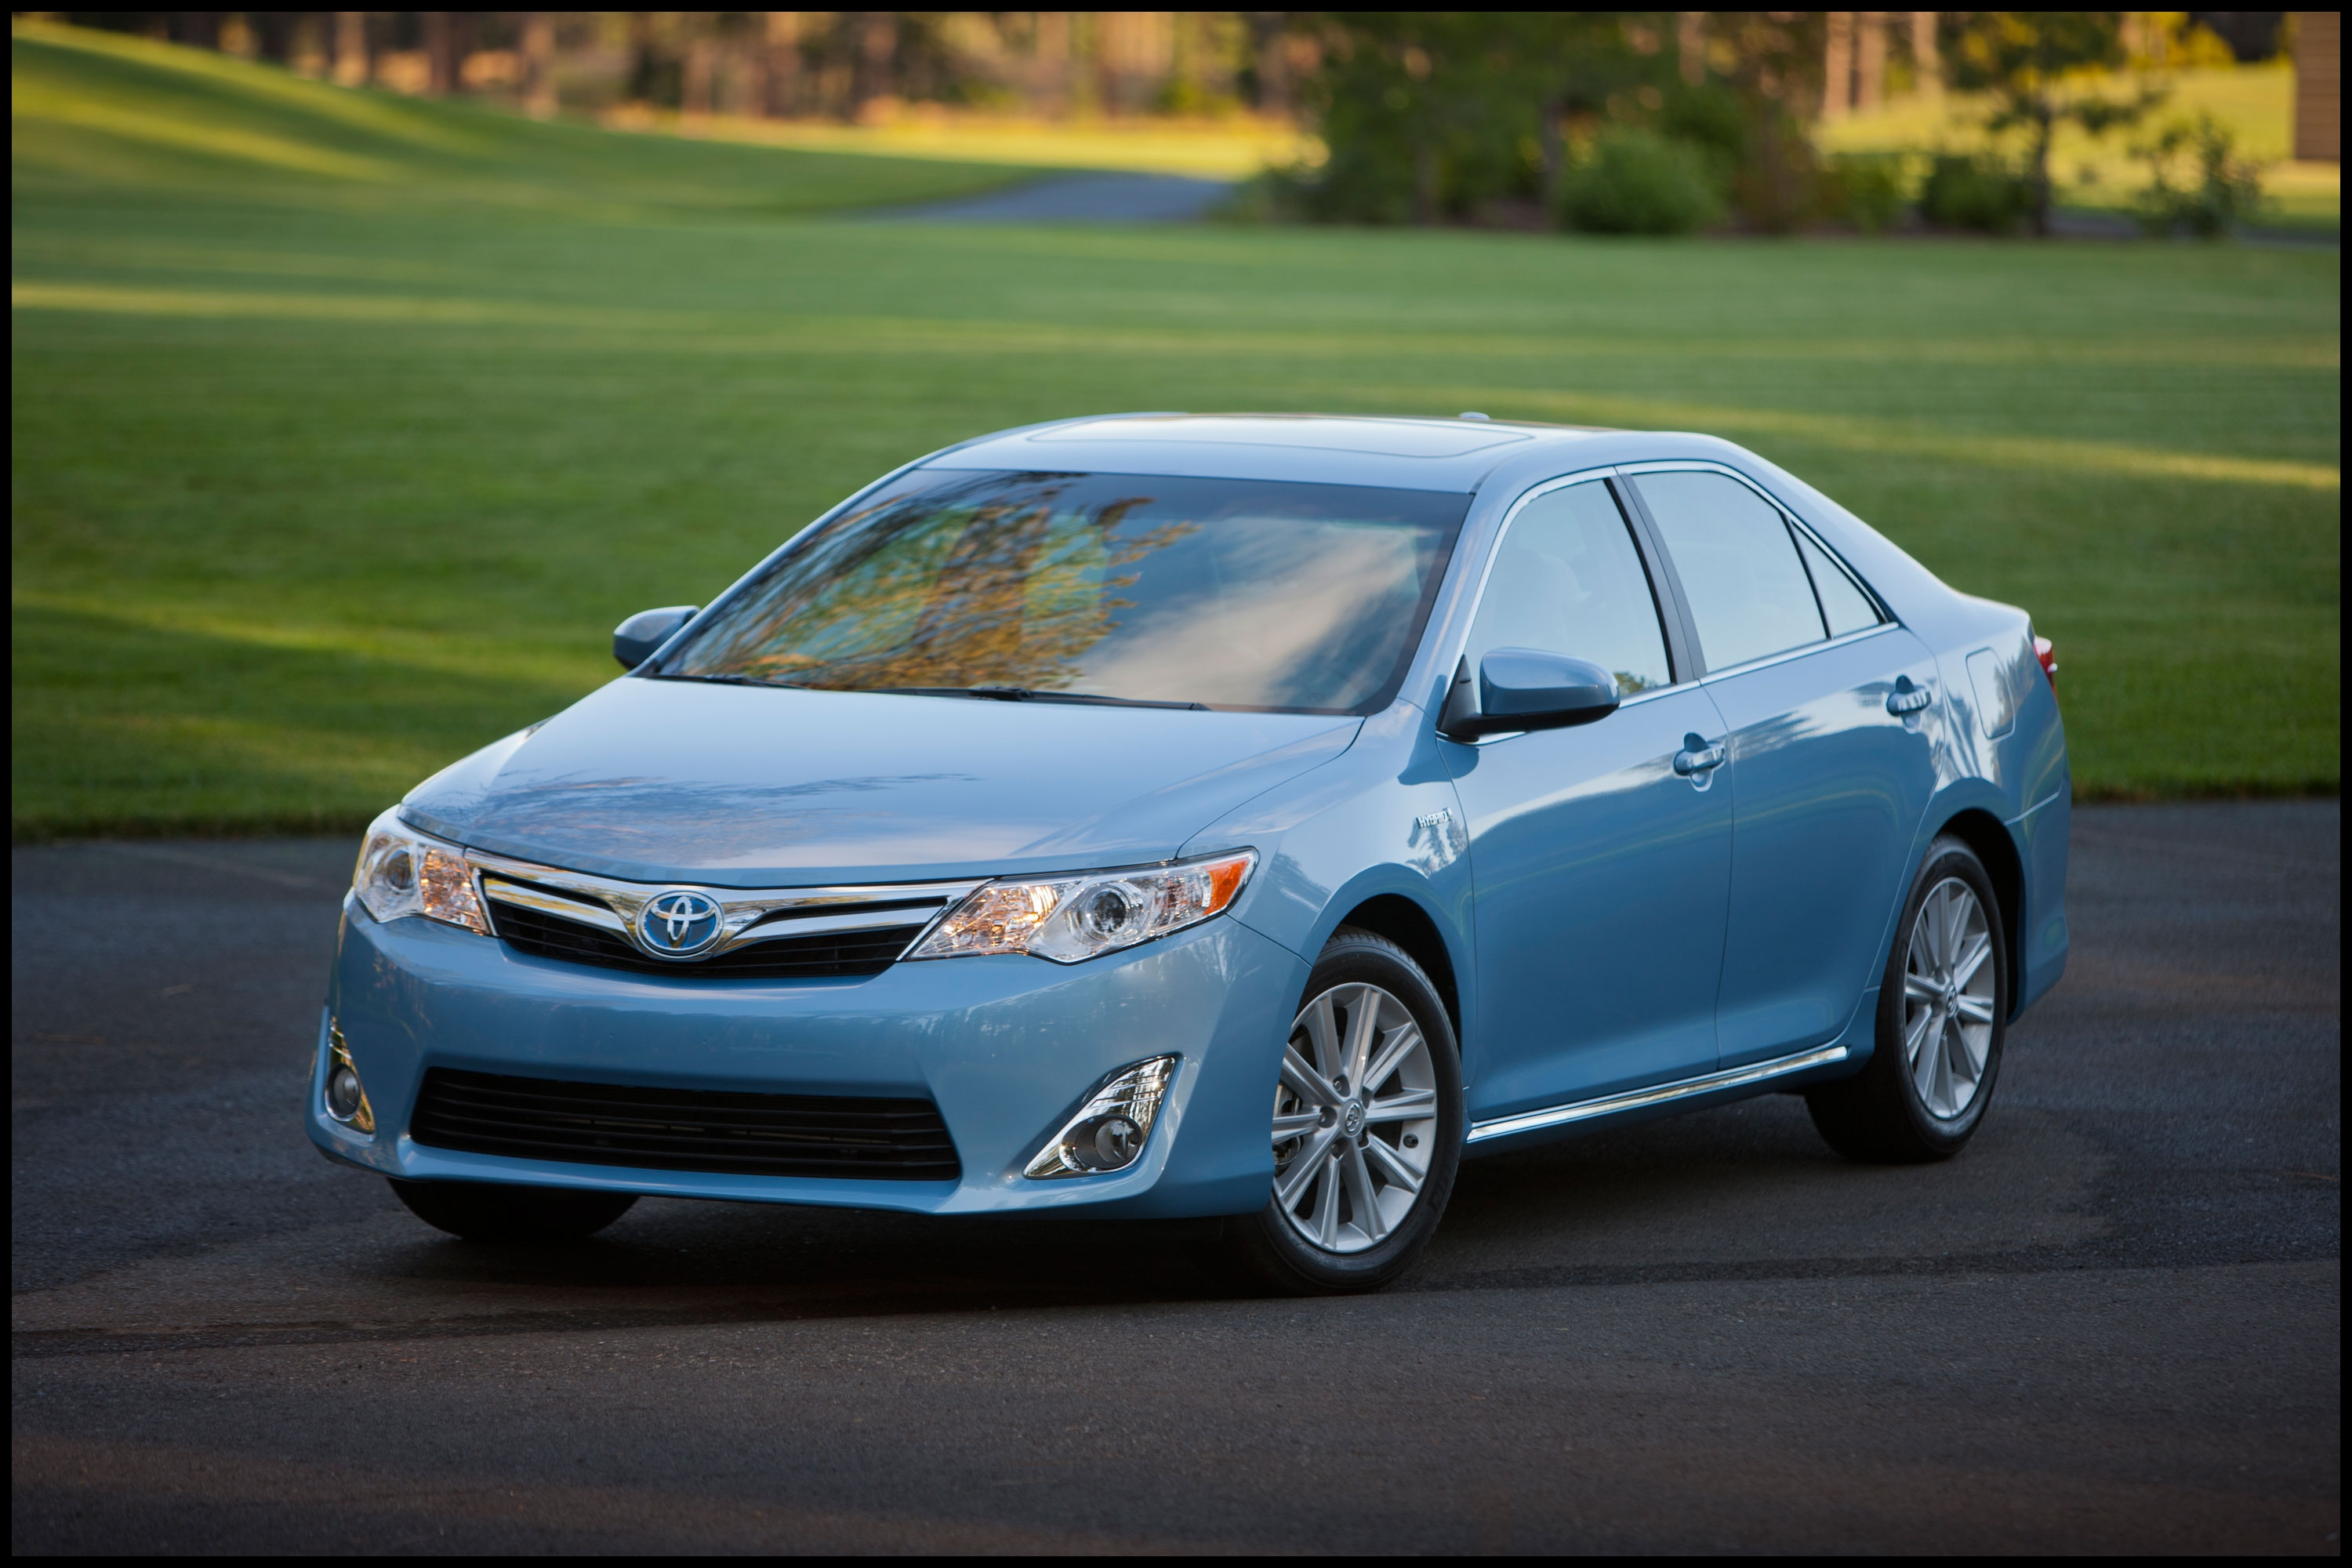 Newly Redesigned 2012 Toyota Camry Hybrid XLE is Named NADAguides Car of the Month for September